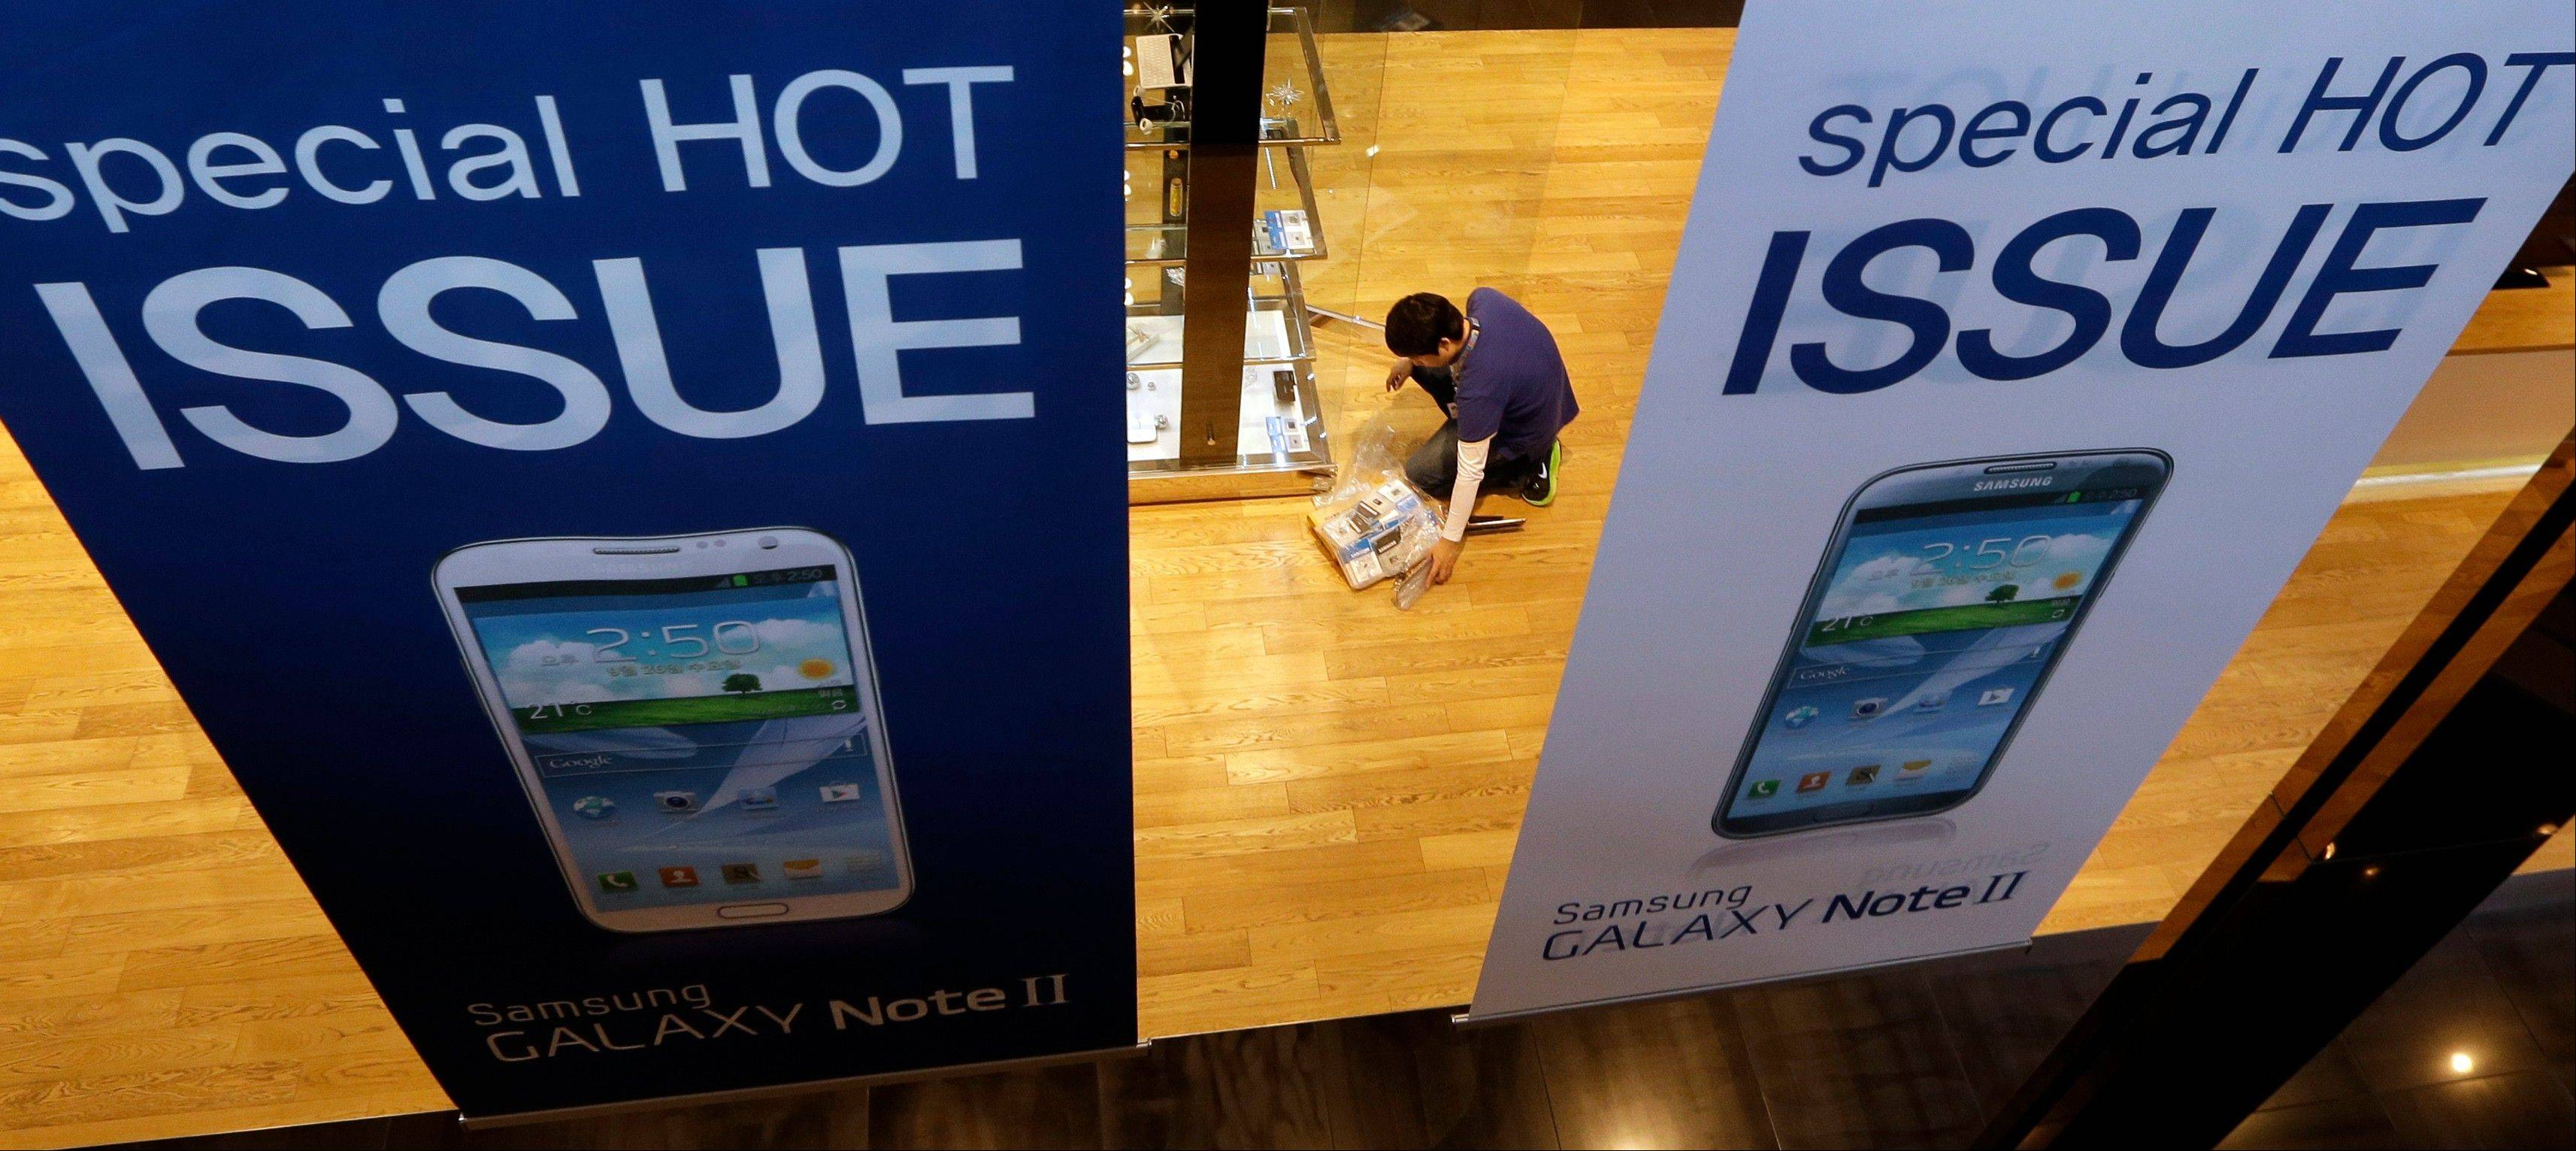 Samsung's third-quarter net profit nearly doubled over a year earlier to a record high propelled by strong sales of Galaxy phones that helped widen its lead over rivals.